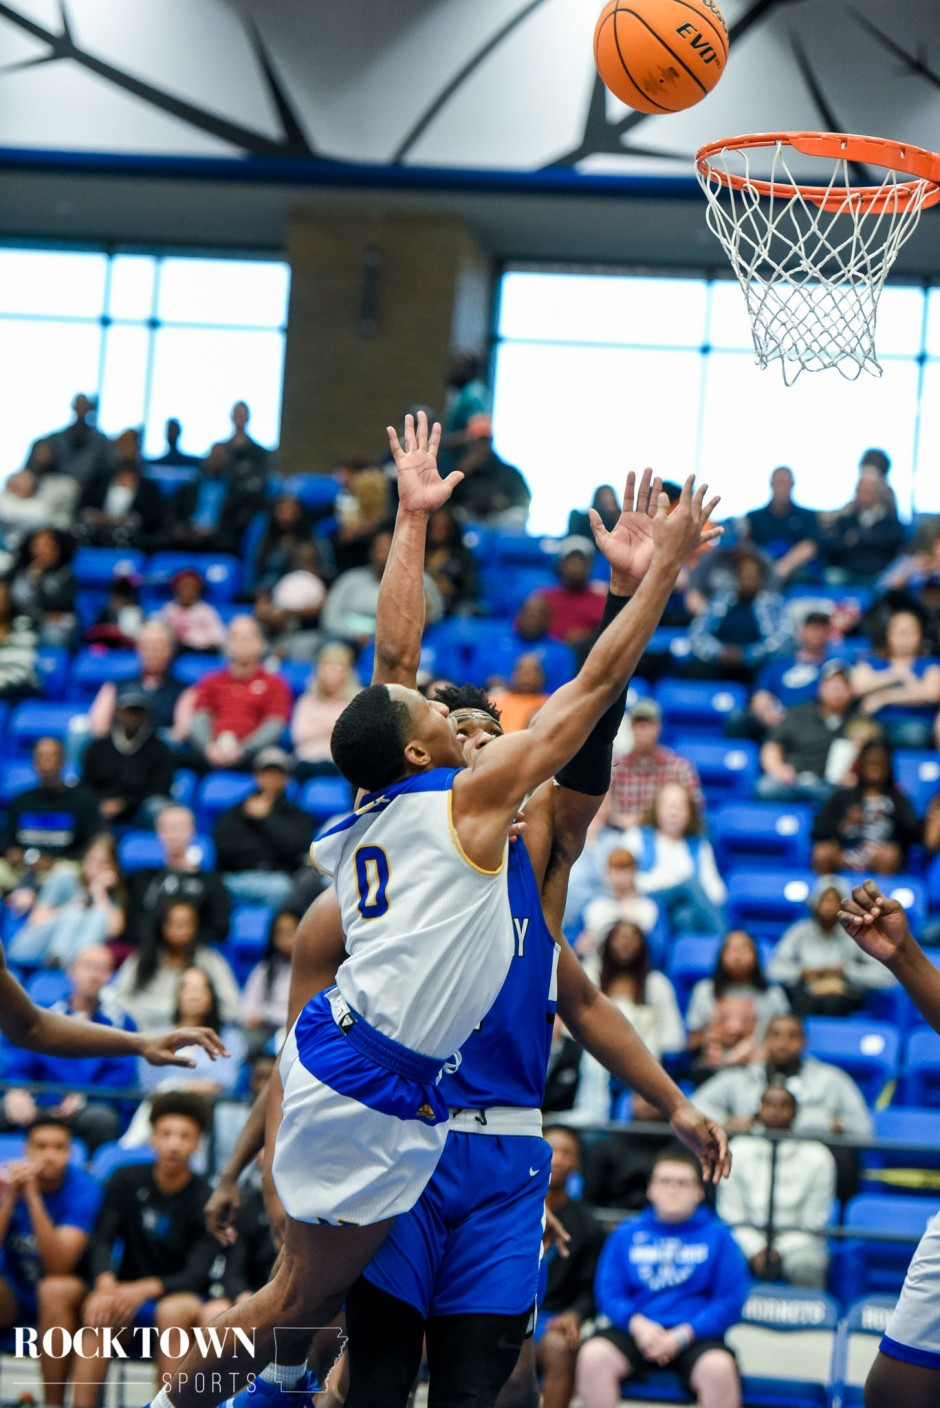 NLR_conway_bball_2020(i)-54